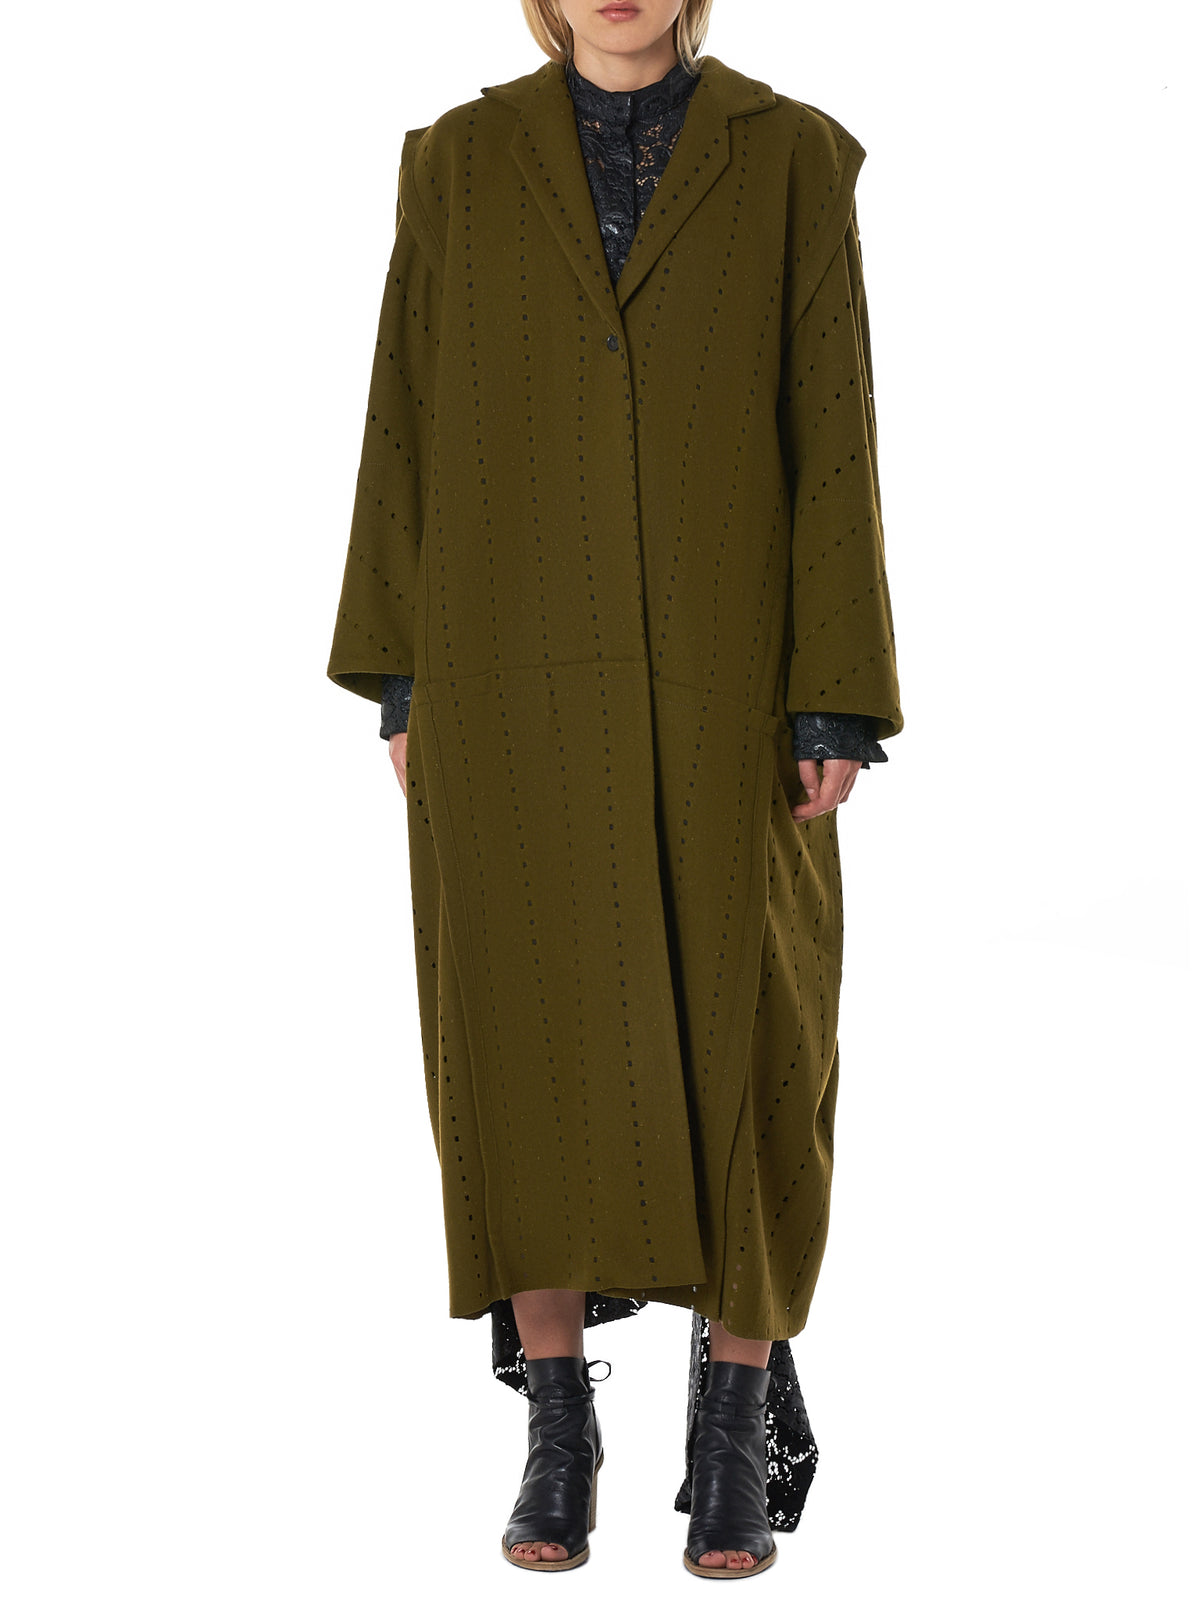 'Roots' Cut-Out Pattern Coat (C07F19-ROOTS-OLIVE)